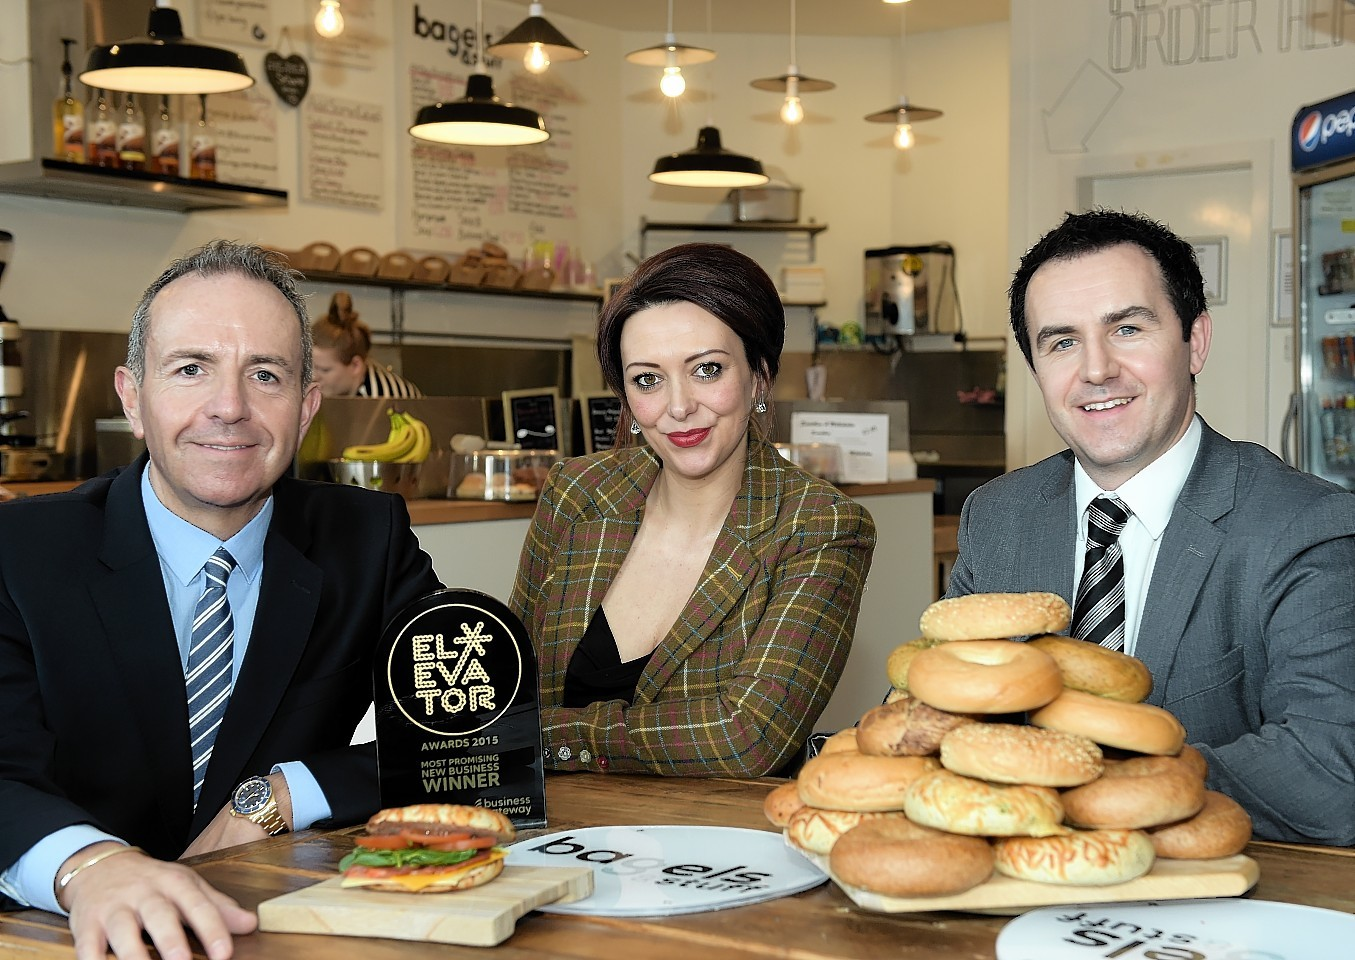 Pictured at the launch of the 2016 Elevator Awards - L-R Elevator Chief Executive Gary McEwan, Bagels & Stuff owner Louise Divarquez and RBS corporate and commercial banking director Russell Whyte